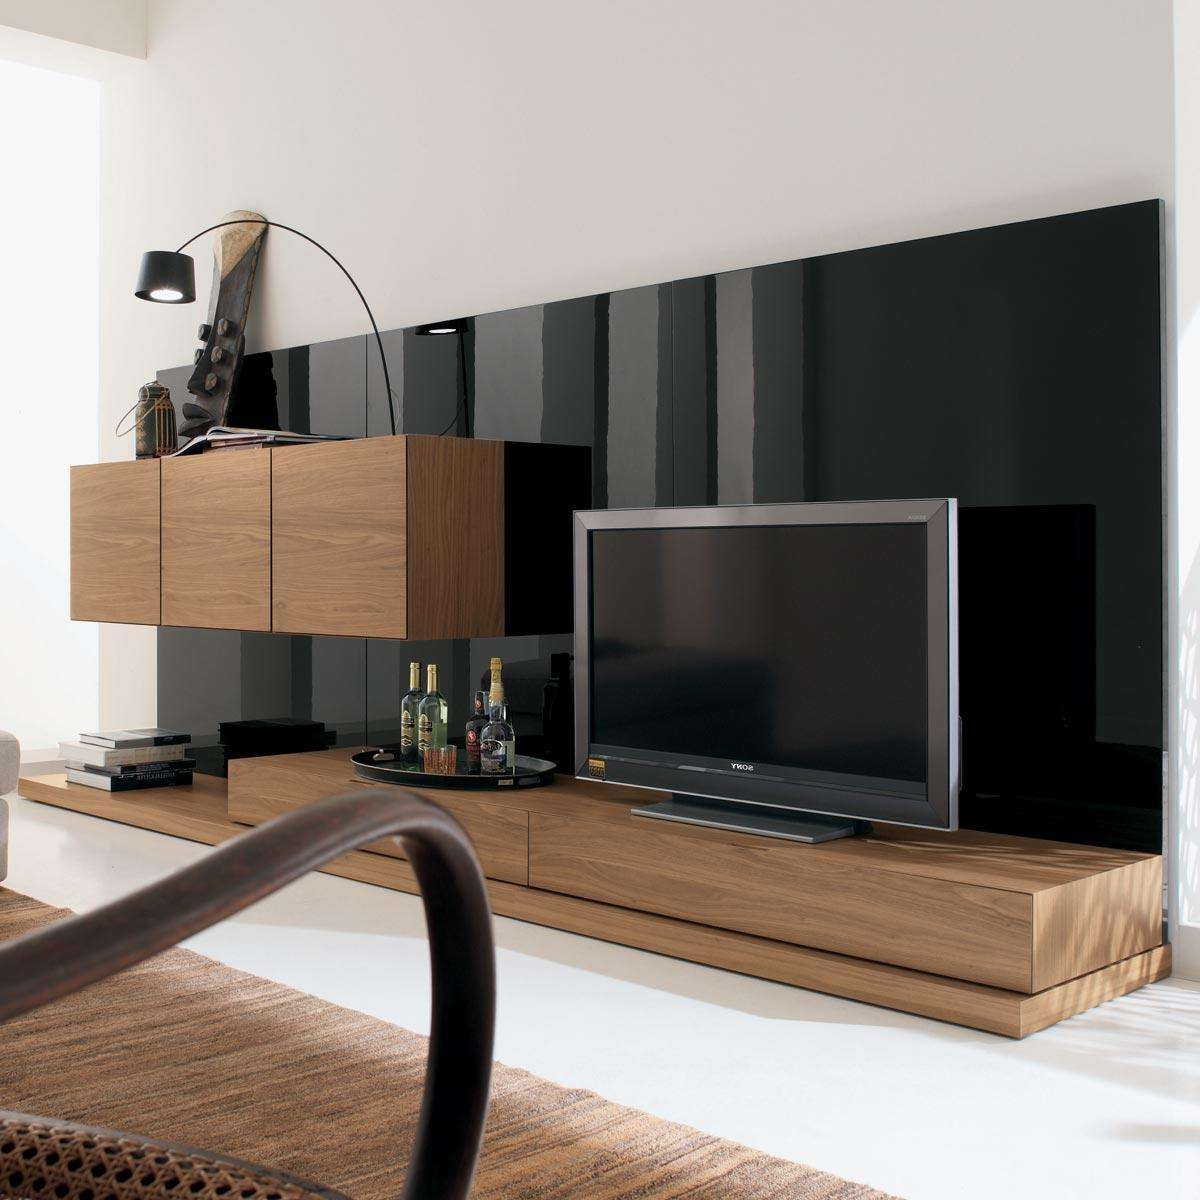 Modern Nature Wood Big Screen Tv Stand Wall Mounted Living Room Throughout Contemporary Tv Stands (View 12 of 15)